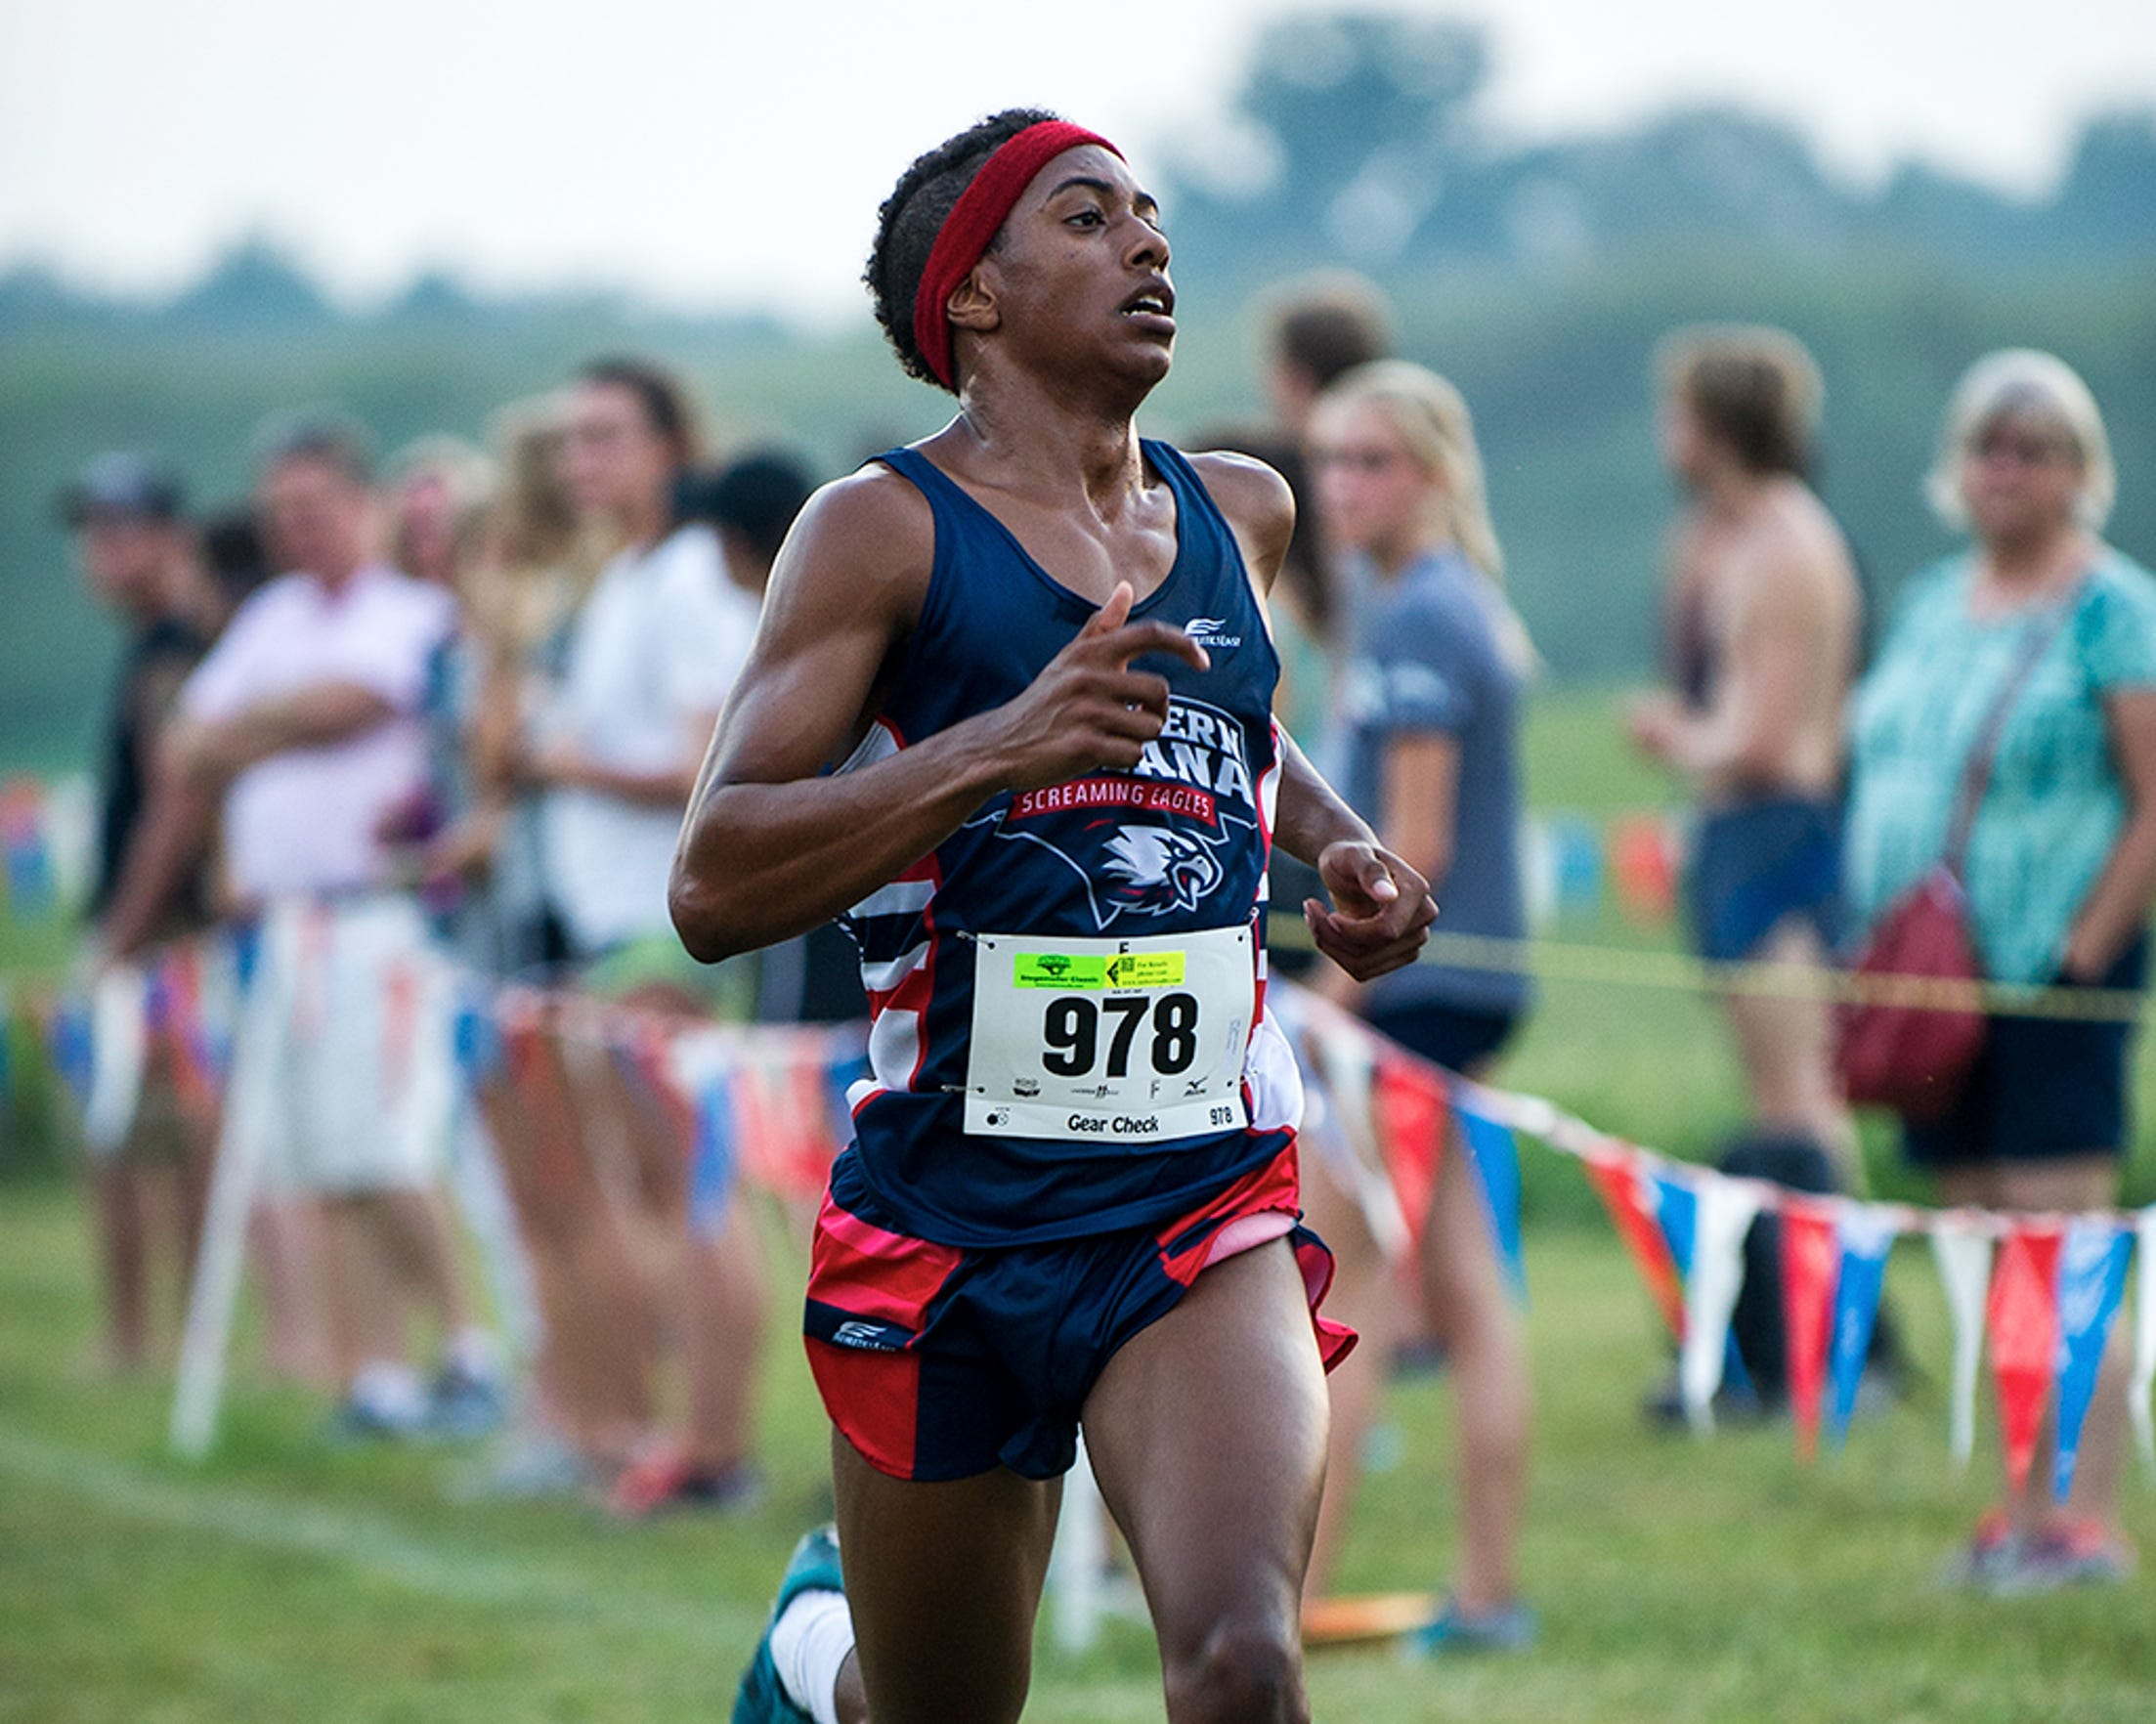 USI senior Darin Lawrence is back on the cross country team this season after sitting out last year to focus on his mental health.